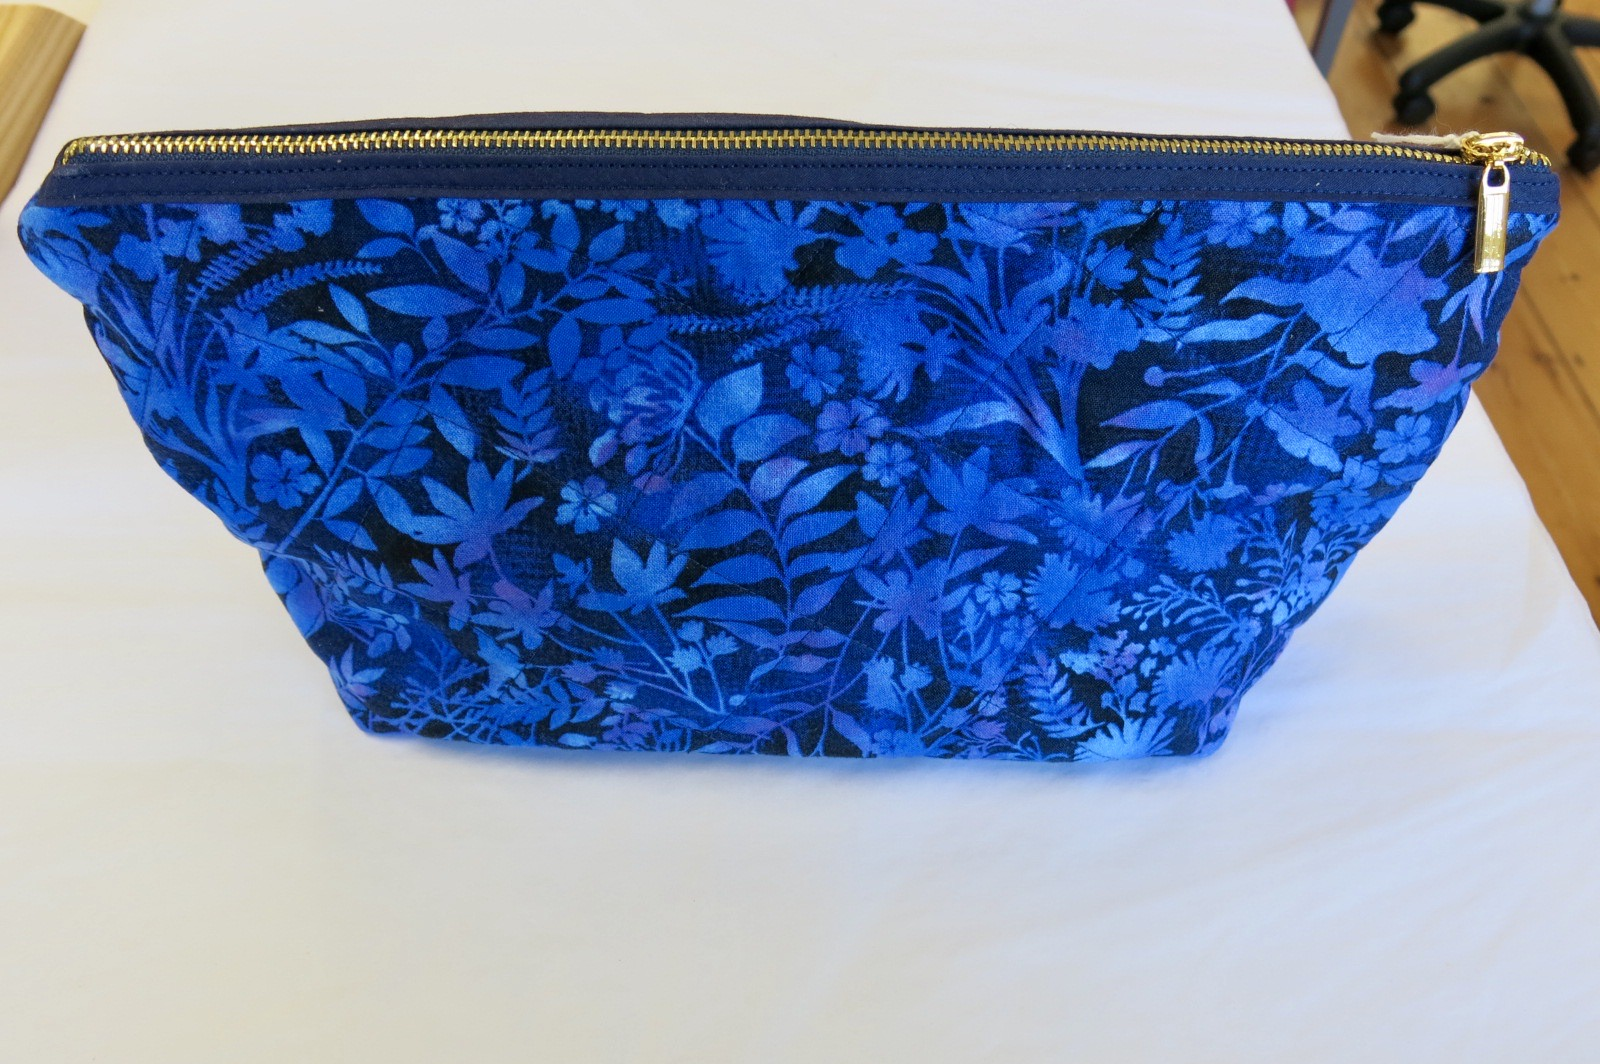 MAKE UP BAG BLUE FLORAL DESIGN